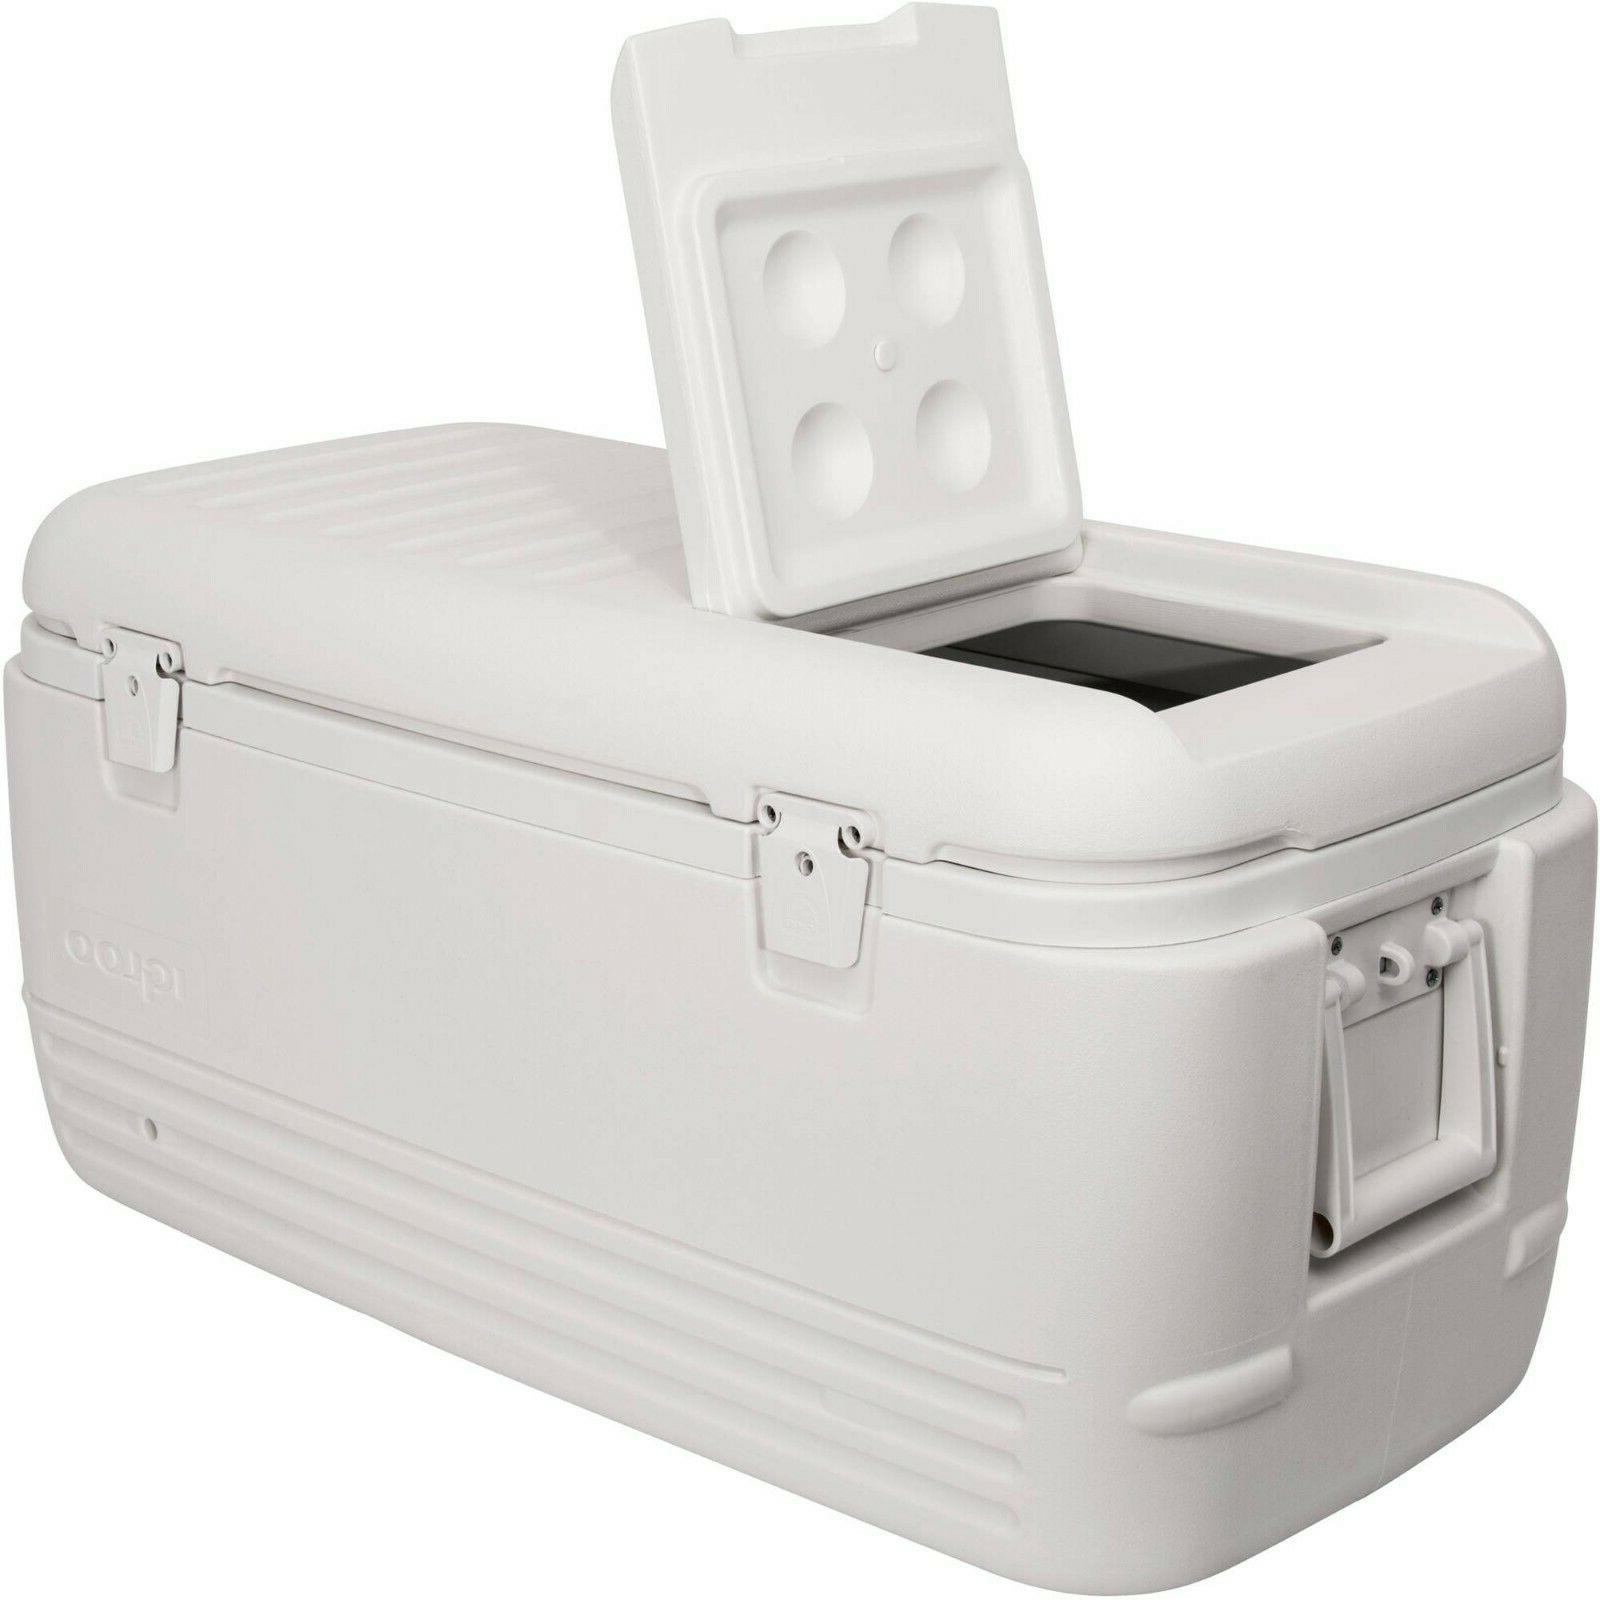 large cooler ice chest tailgating marine camping